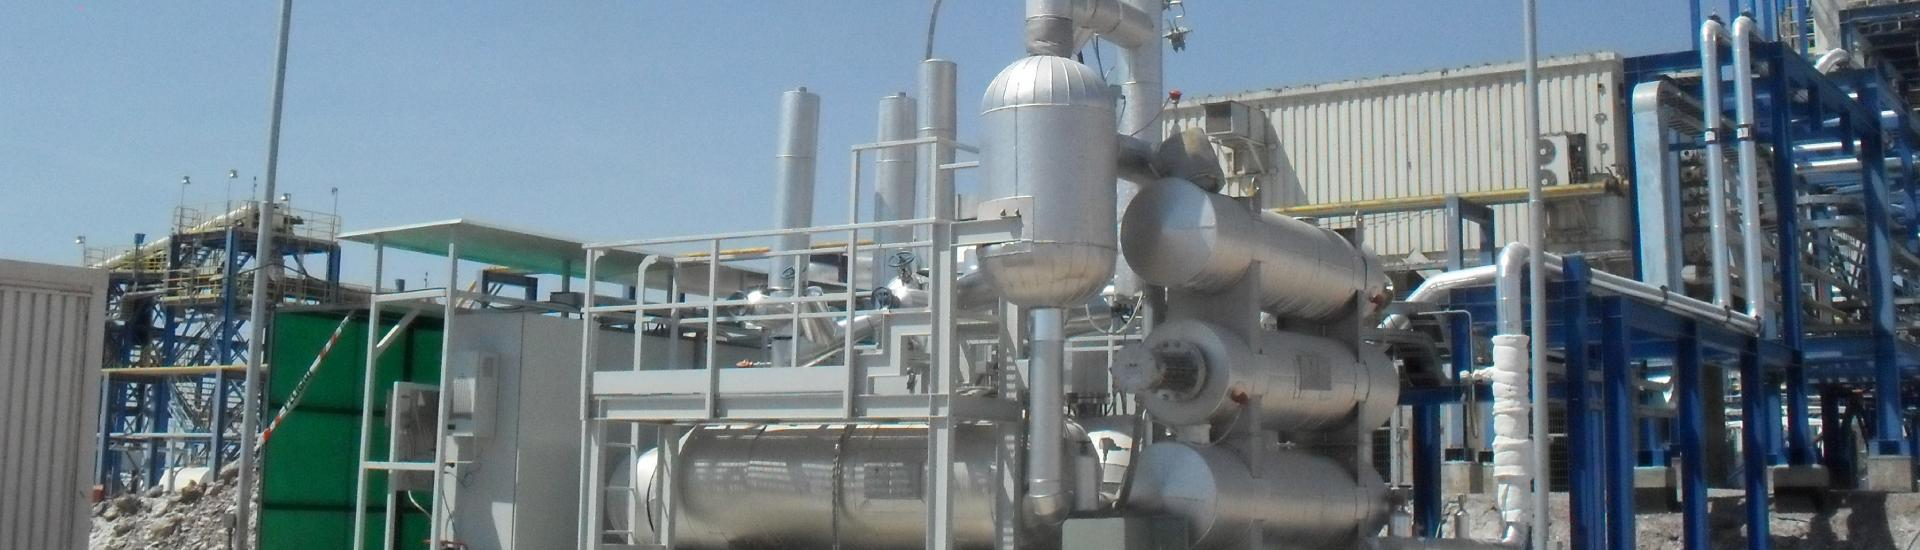 MOLTEN SALT TREATMENT PILOT PLANT